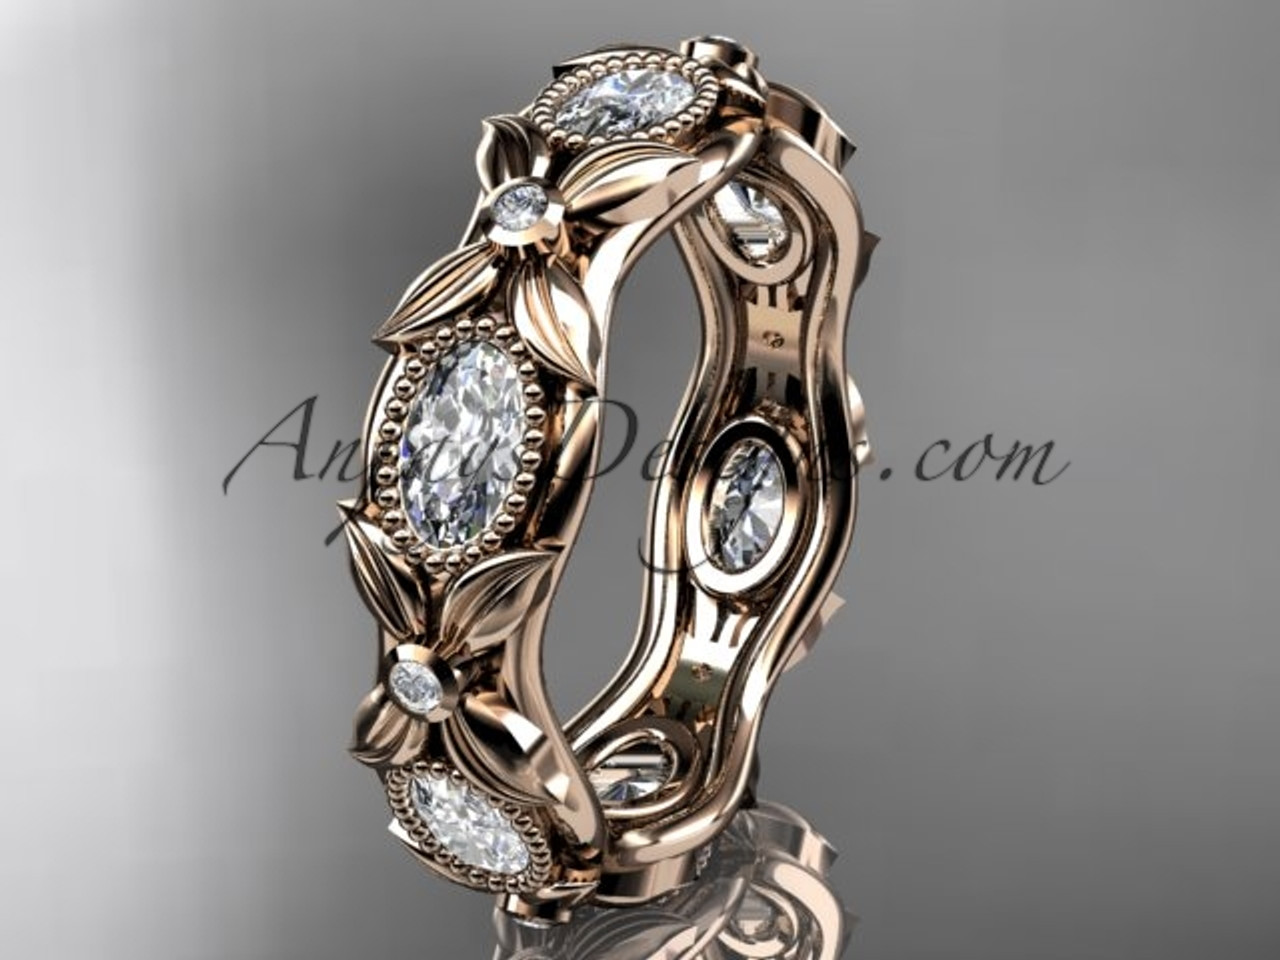 14kt rose gold diamond leaf and vine wedding bandengagement ring adlr152b nature inspired jewelry - Rose Gold Diamond Wedding Ring